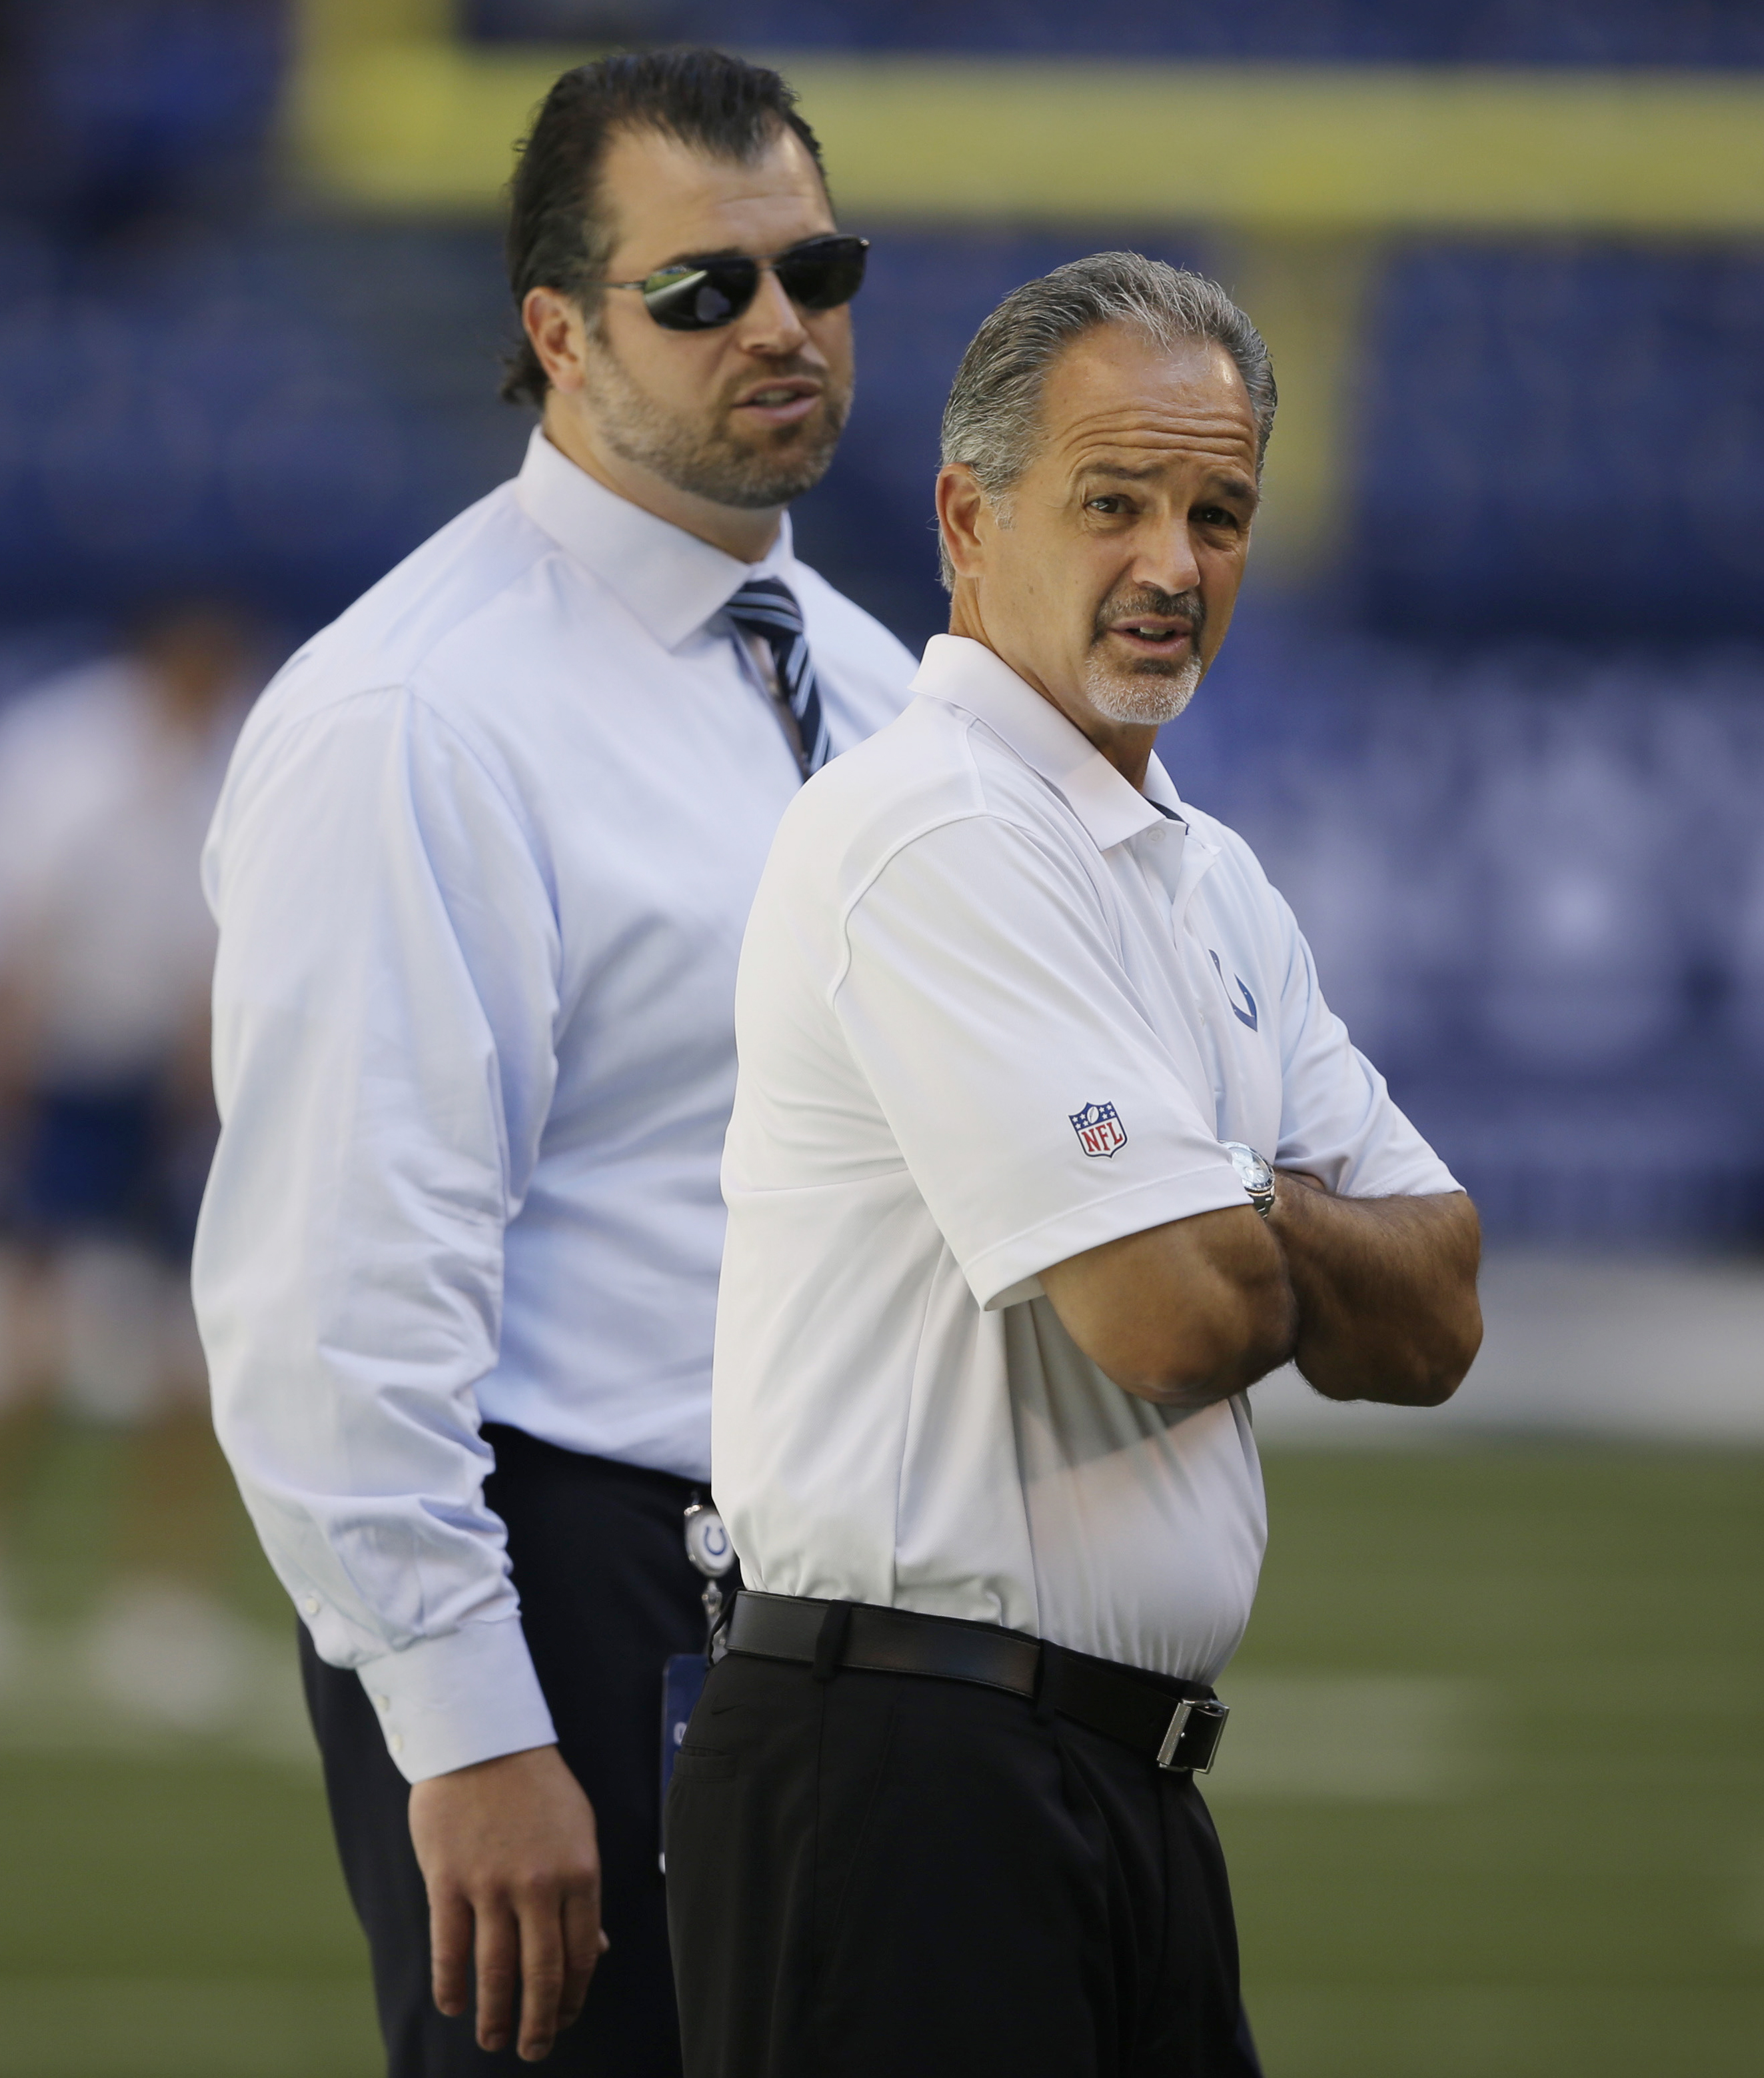 FILE - In this Sept. 28, 2014, file phot,o Indianapolis Colts general manager Ryan Grigson, left, and head coach Chuck Pagano walk on the field before an NFL football game against  the Tennessee Titans in Indianapolis. Pagano's contract is about to expire